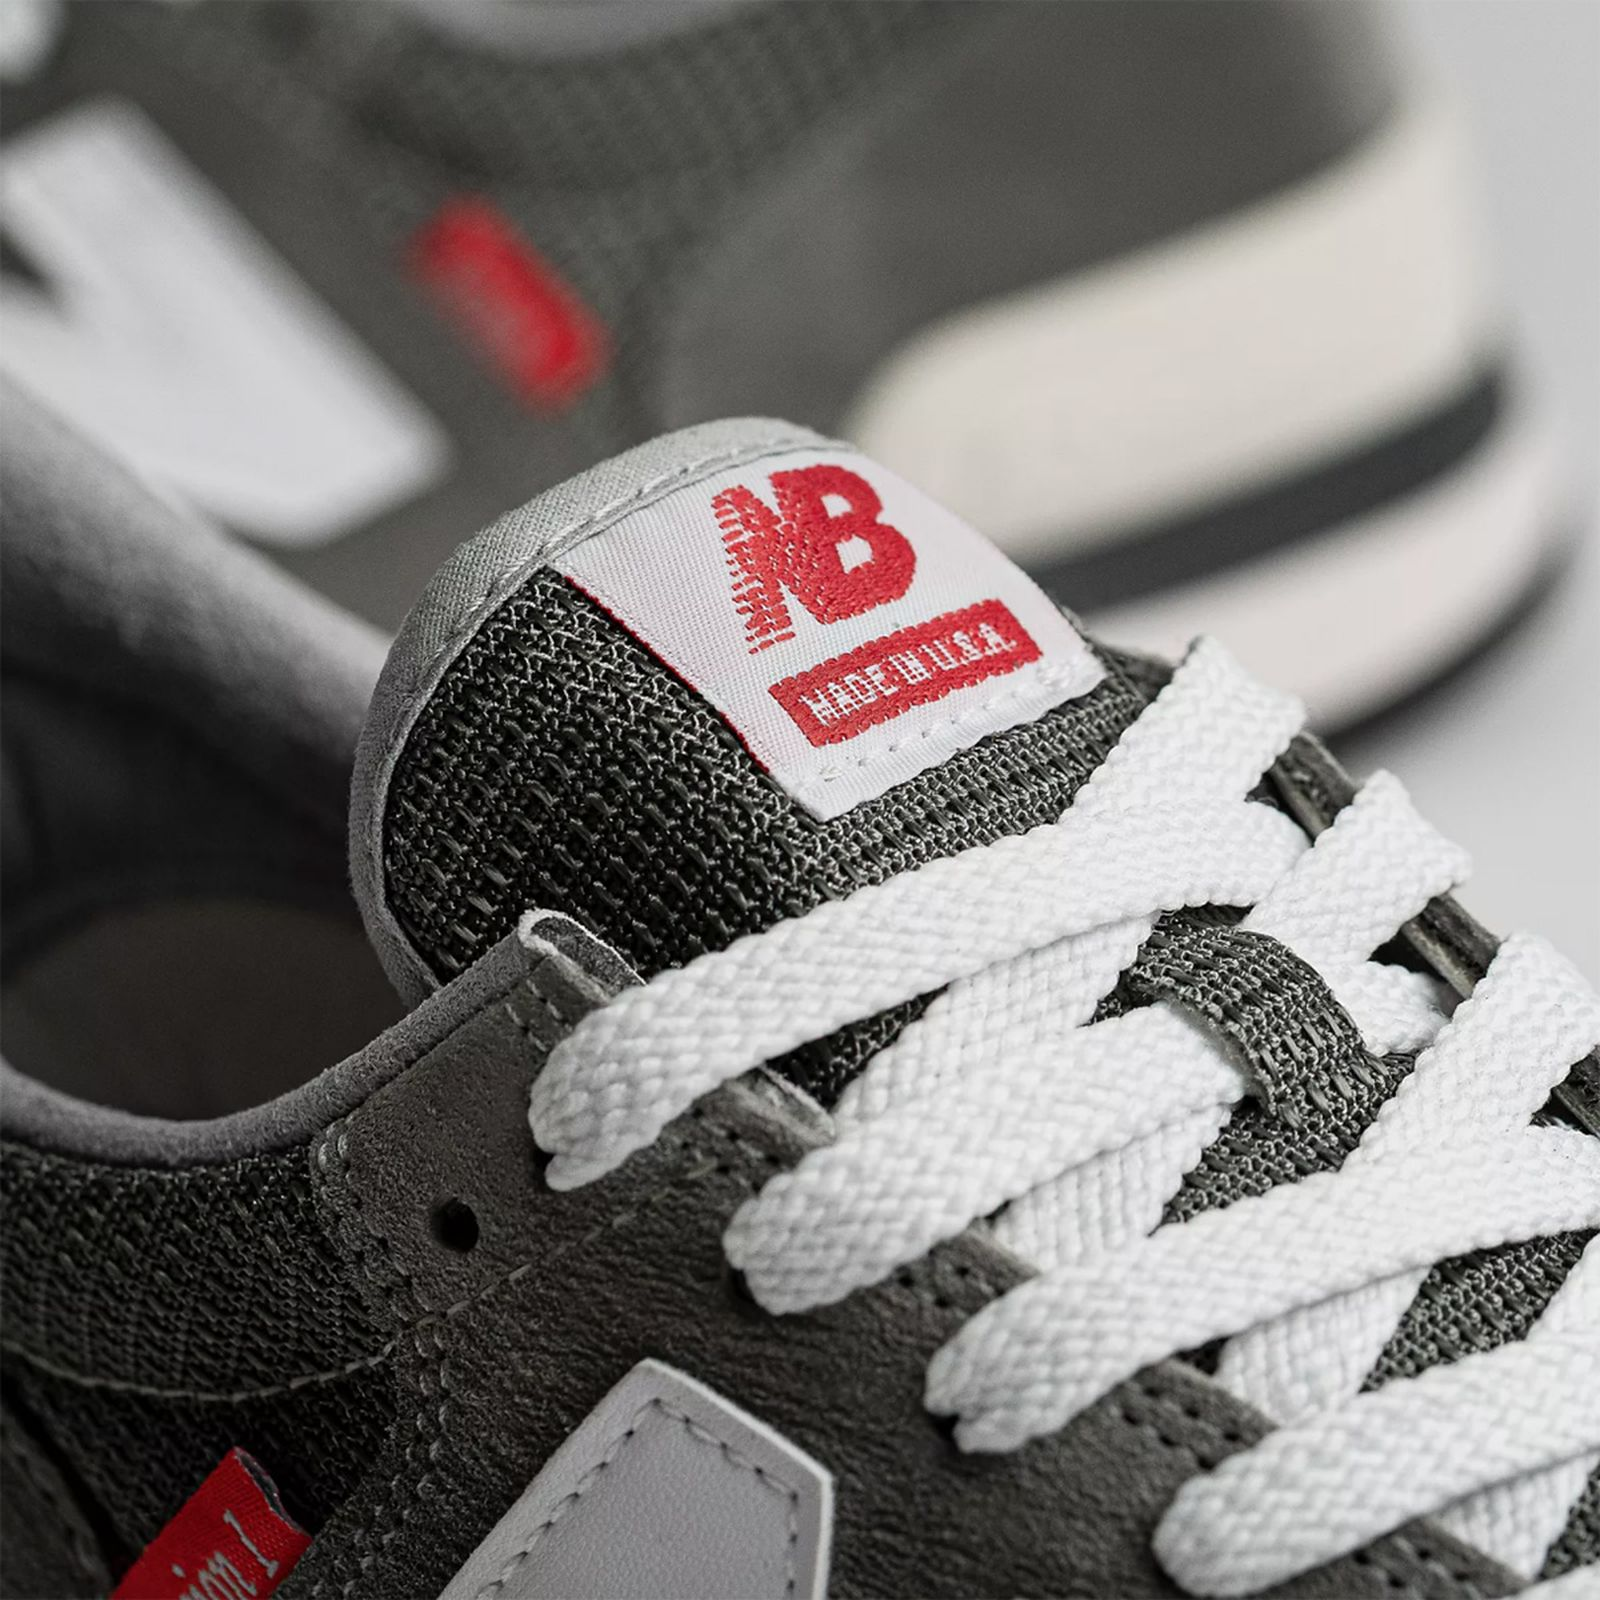 new-balance-made-990v1-release-date-price-07